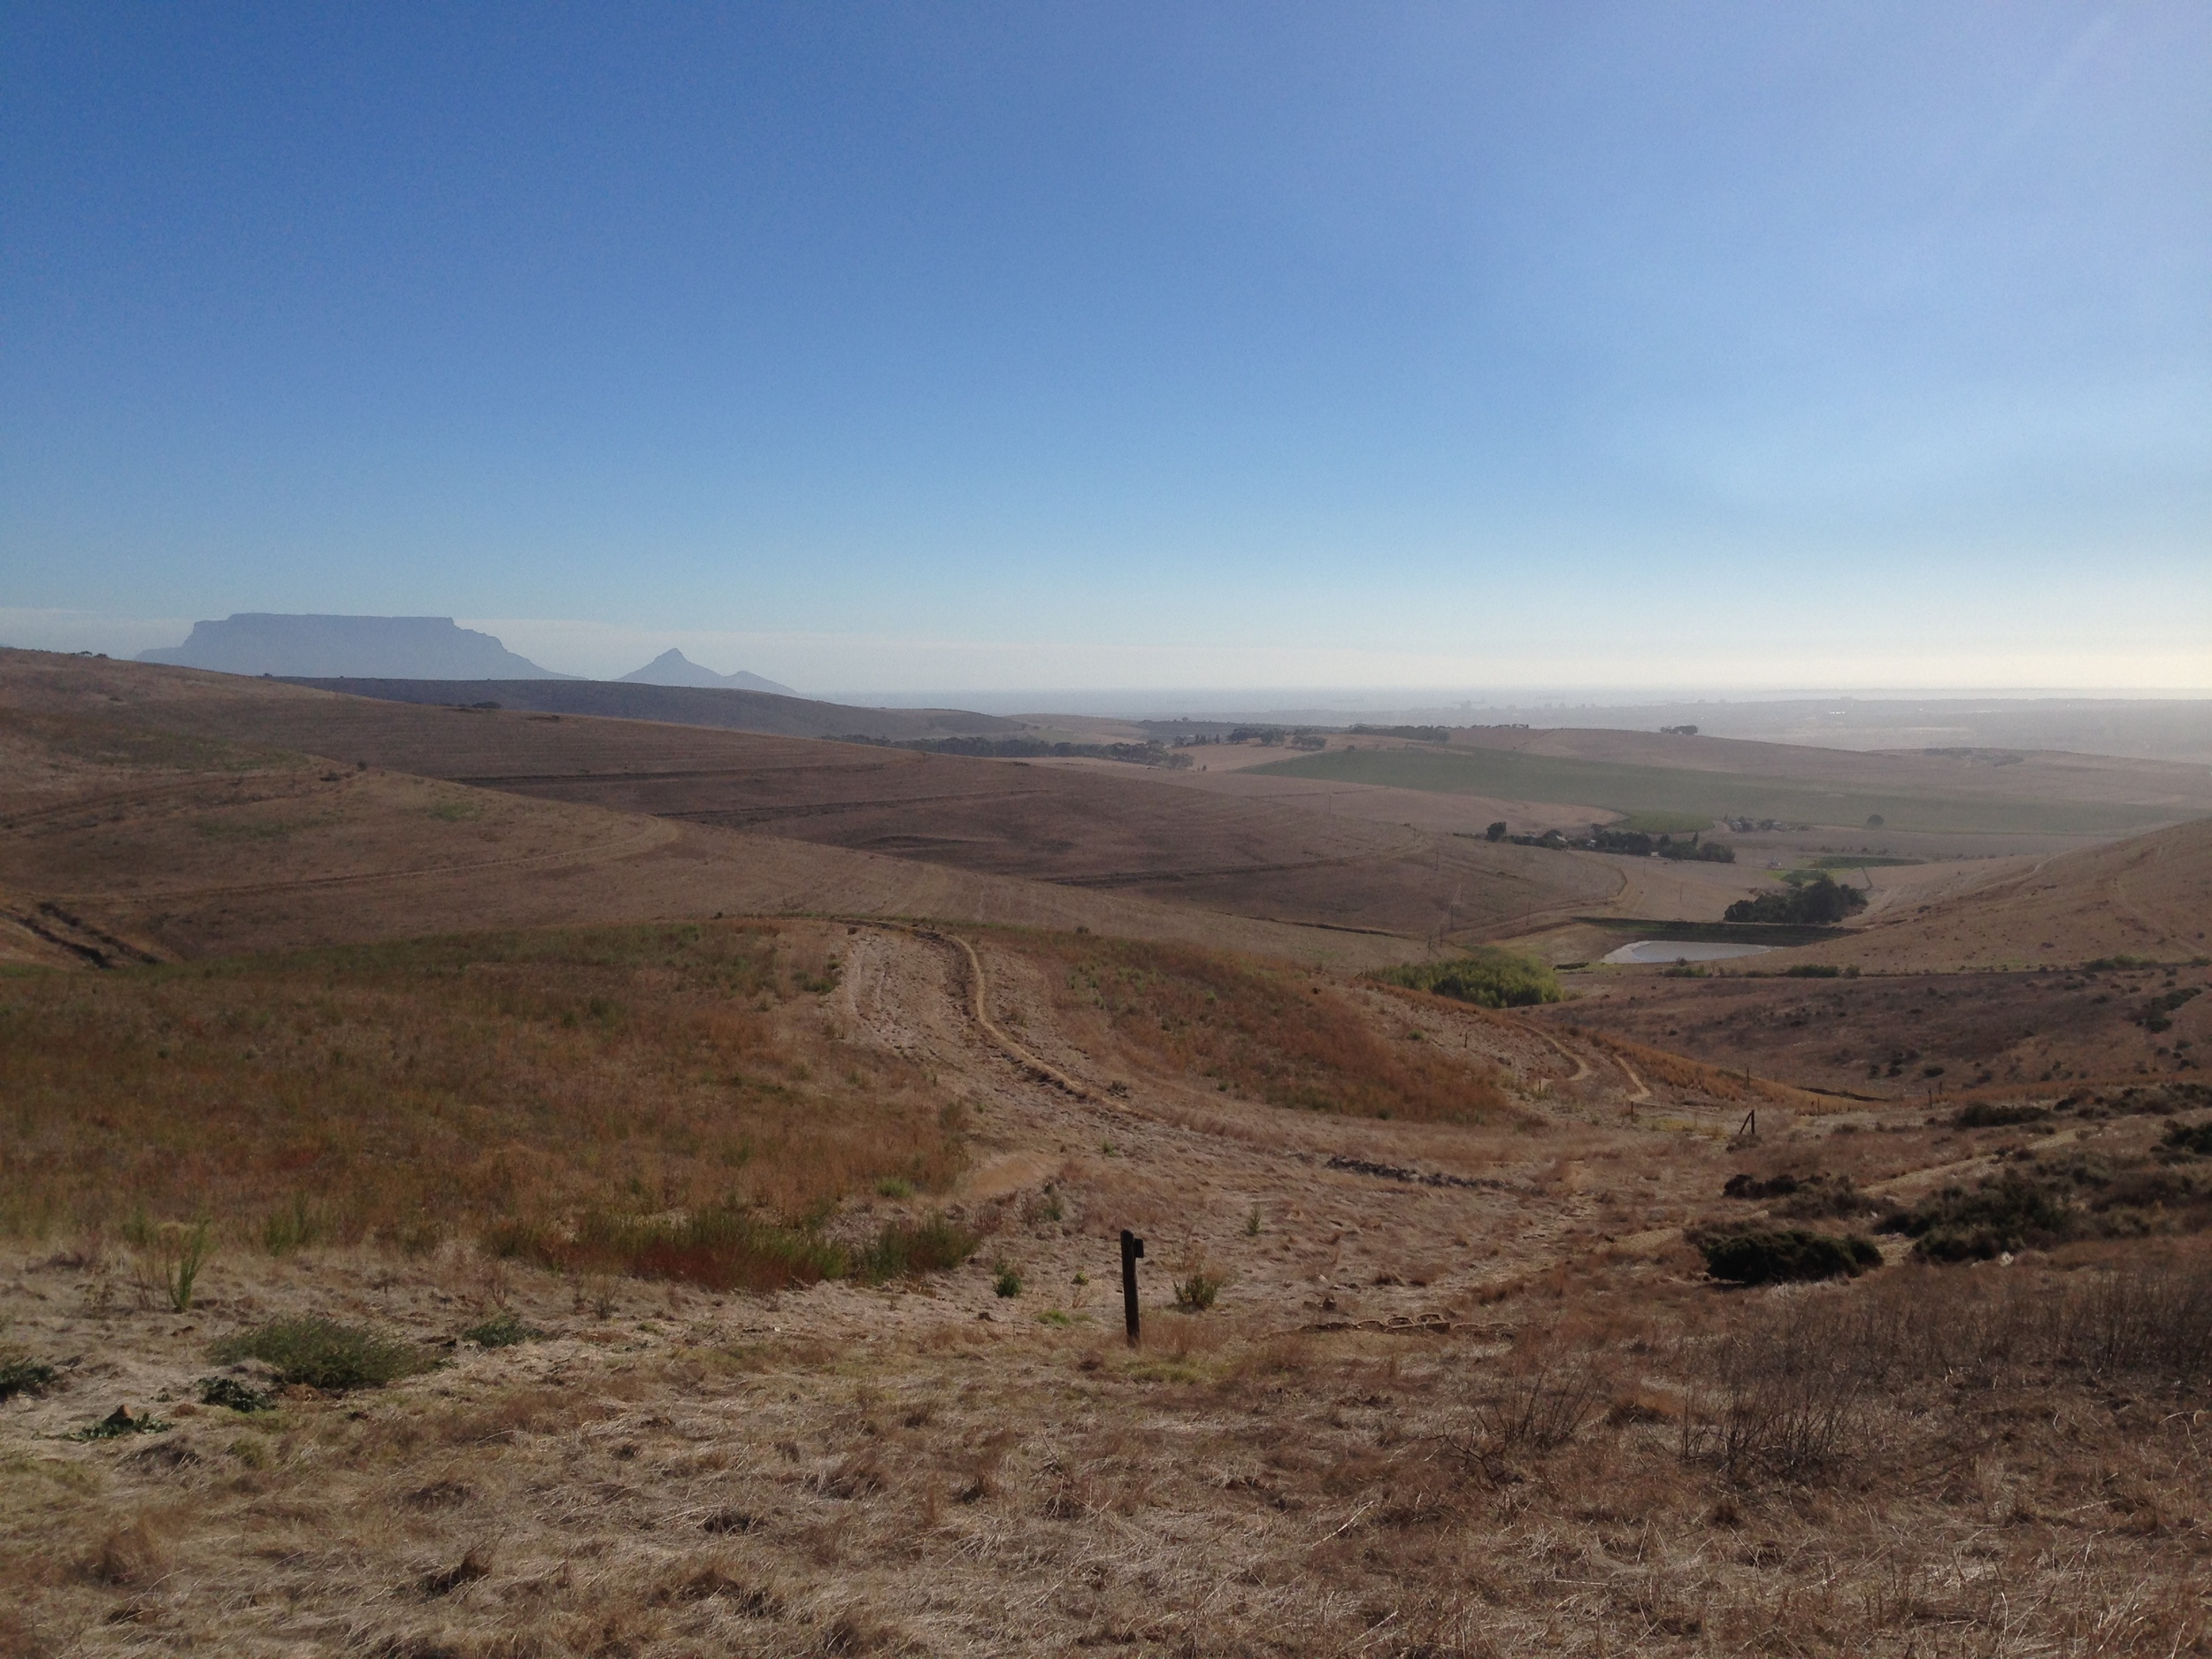 the view from the trails around Meerendal. Nice to see the Tafelberg in Capetown!